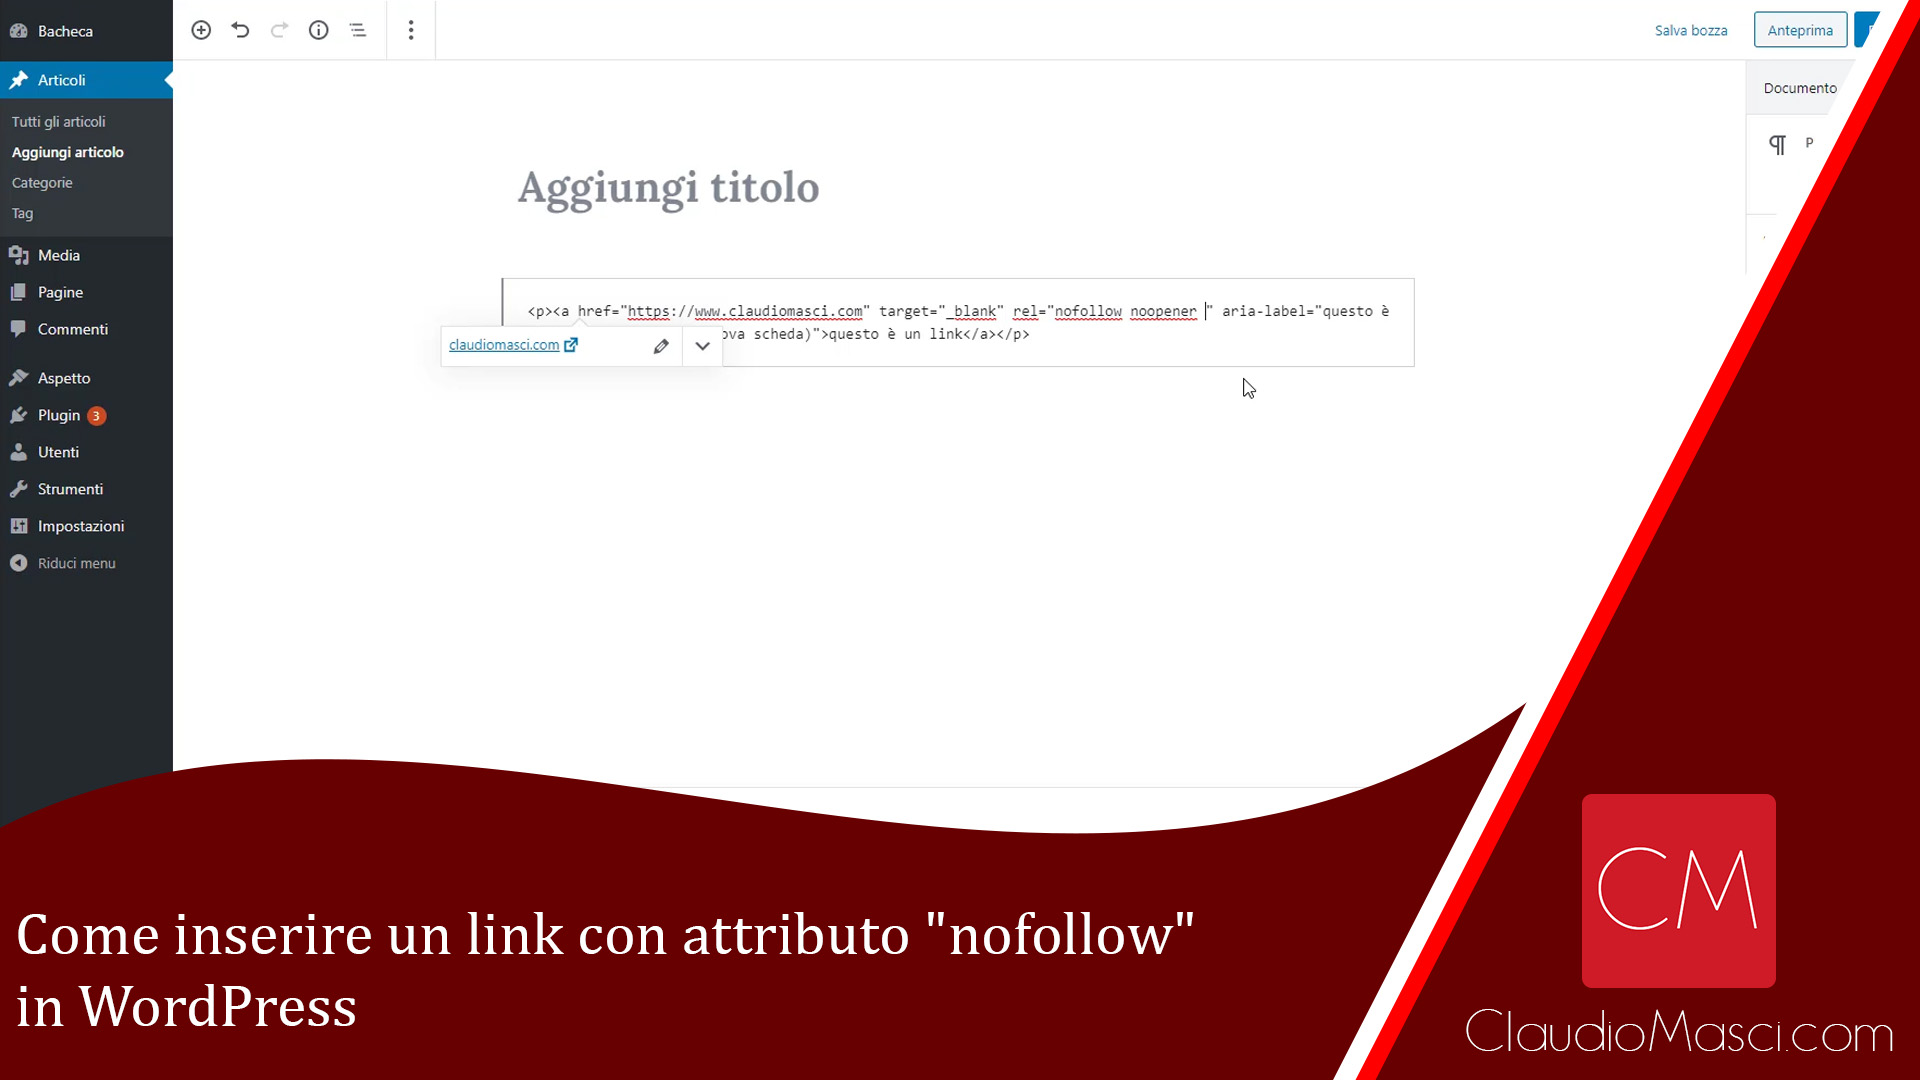 "Come inserire un link con attributo ""nofollow"" in WordPress"